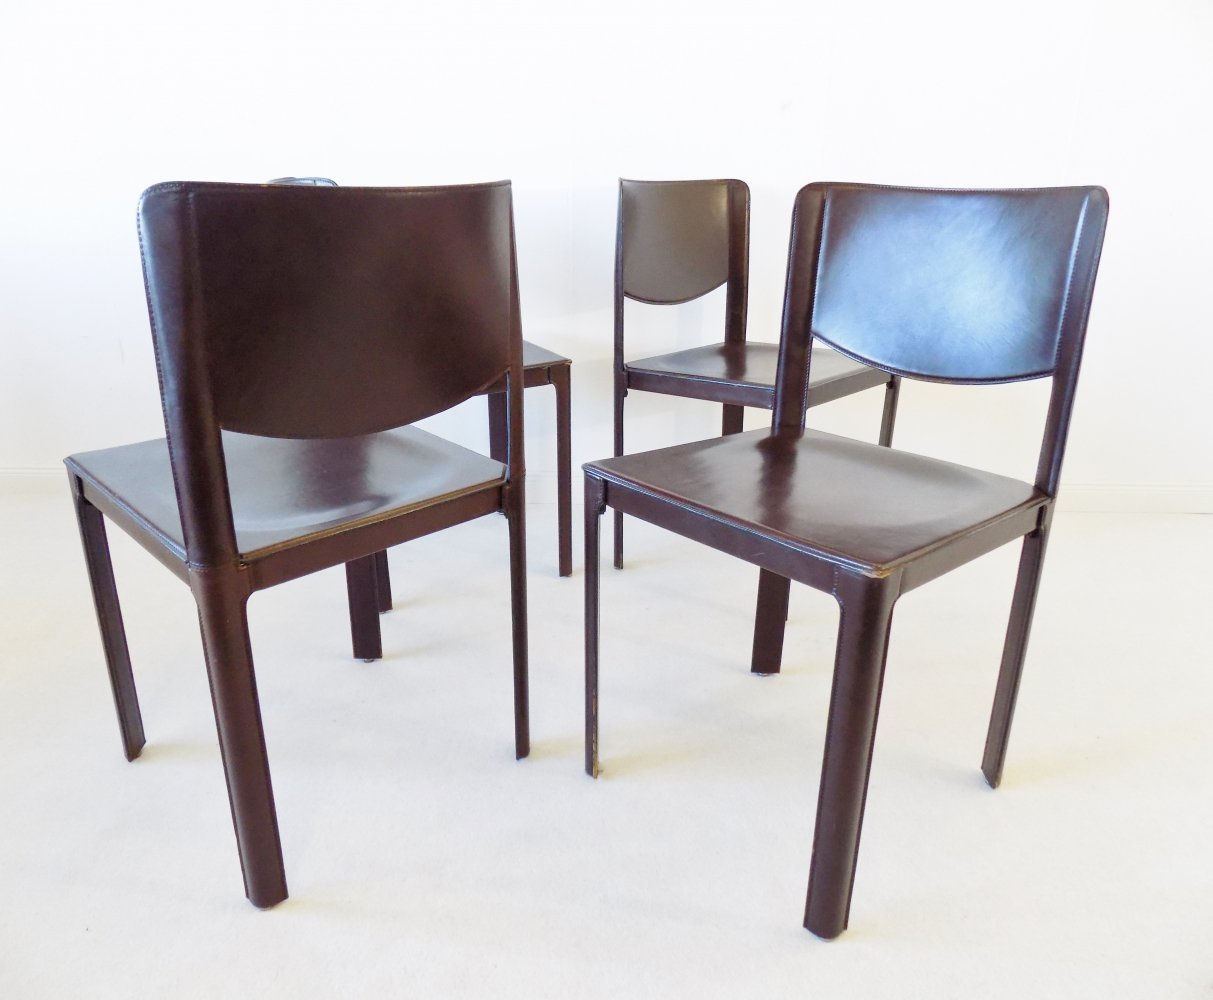 Set of 4 leather dining chairs by Tito Agnoli for Matteo Grassi, 1980s